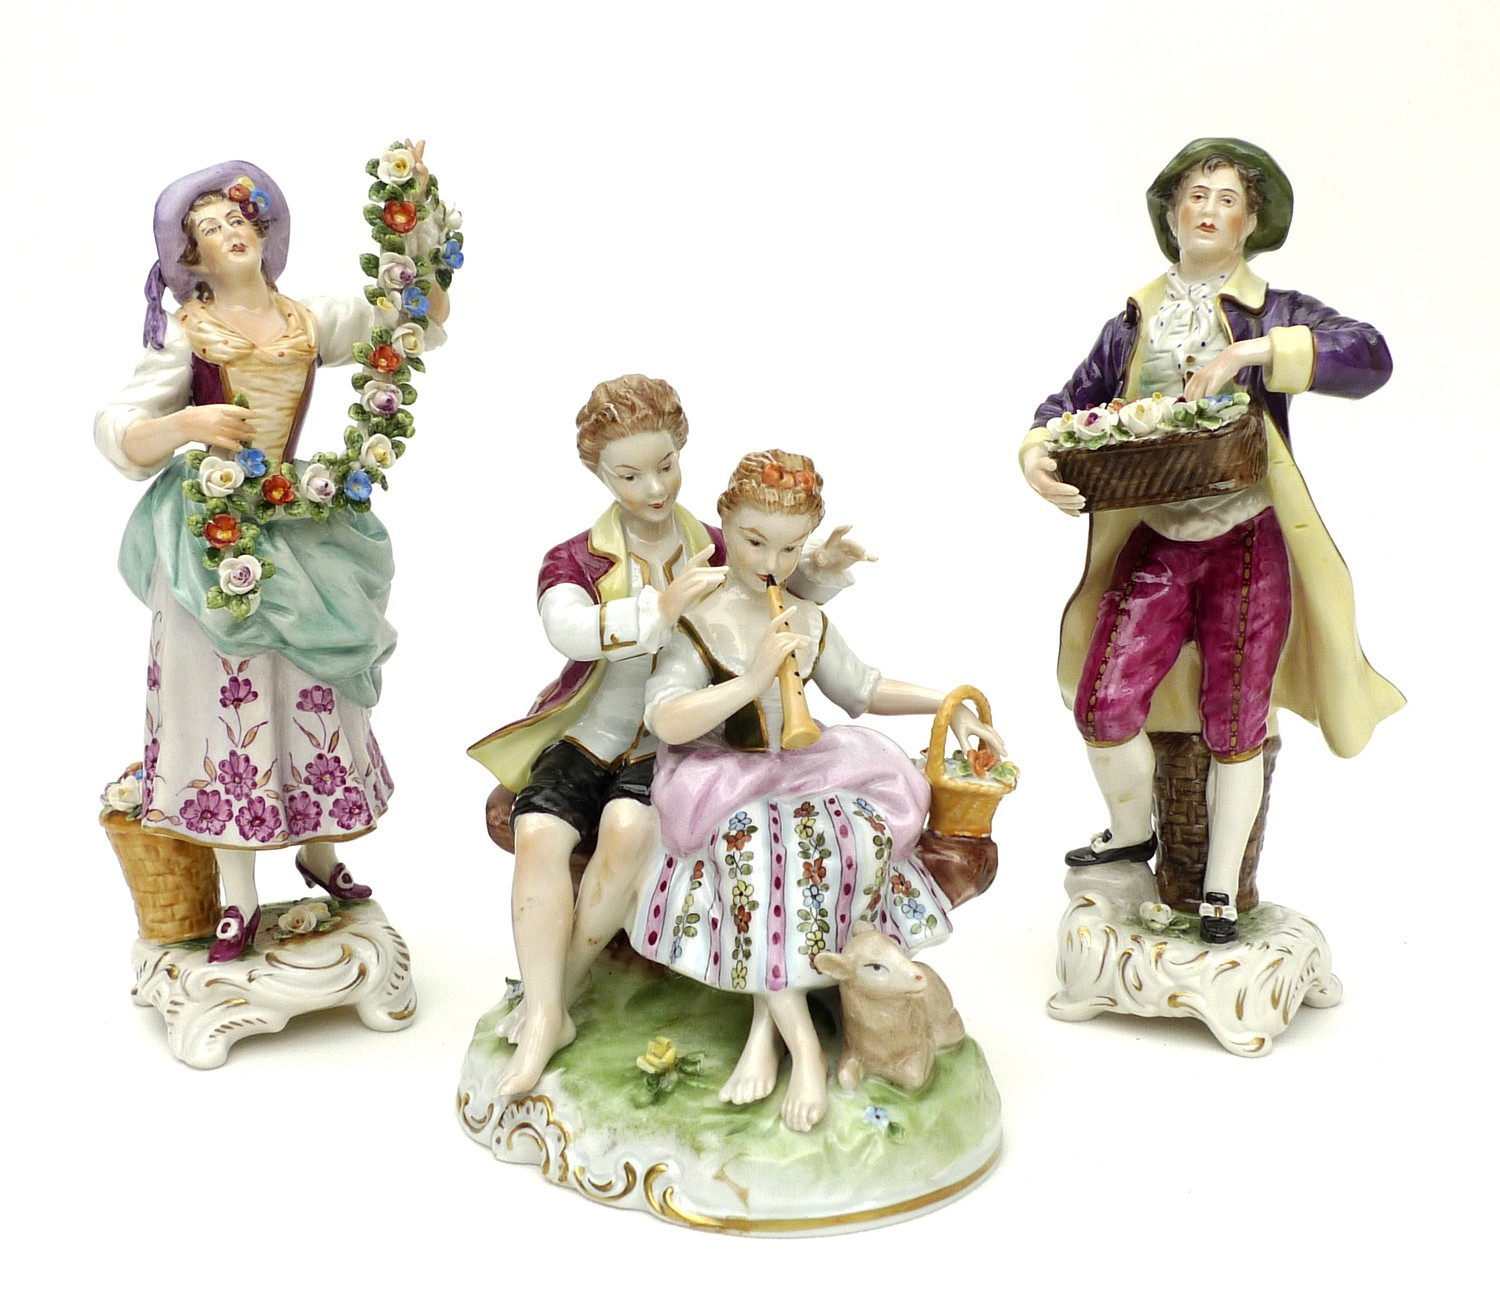 A pair of Rudolstadt Volkstedt figurines, in the Dresden style, comprising male and female flower